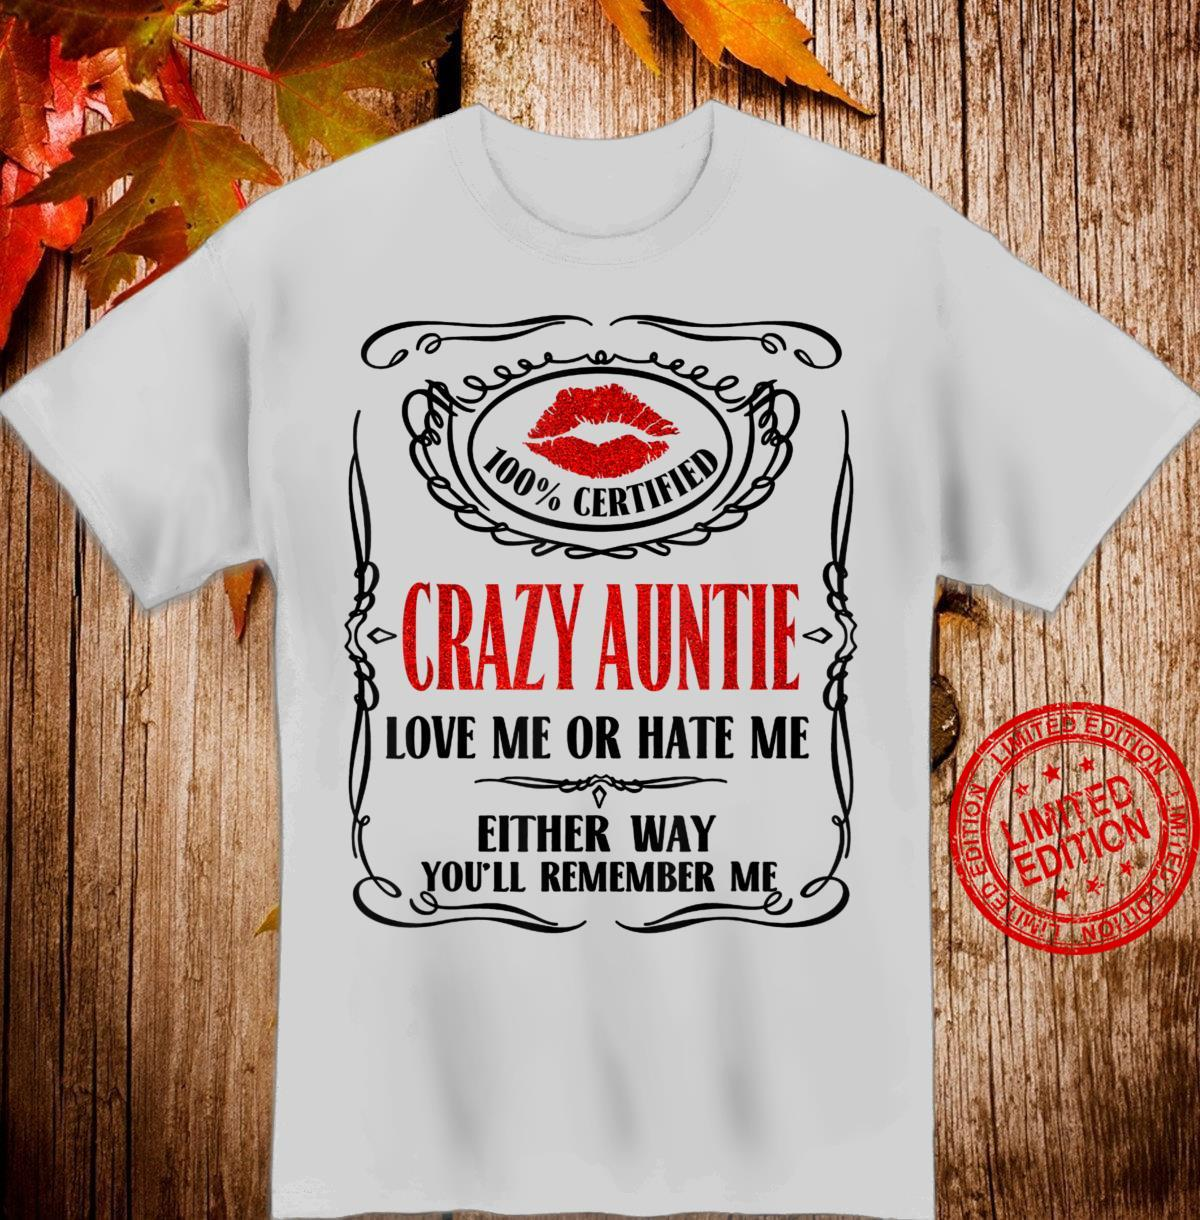 100% certified Crazy Auntie love me or hate me either way Shirt